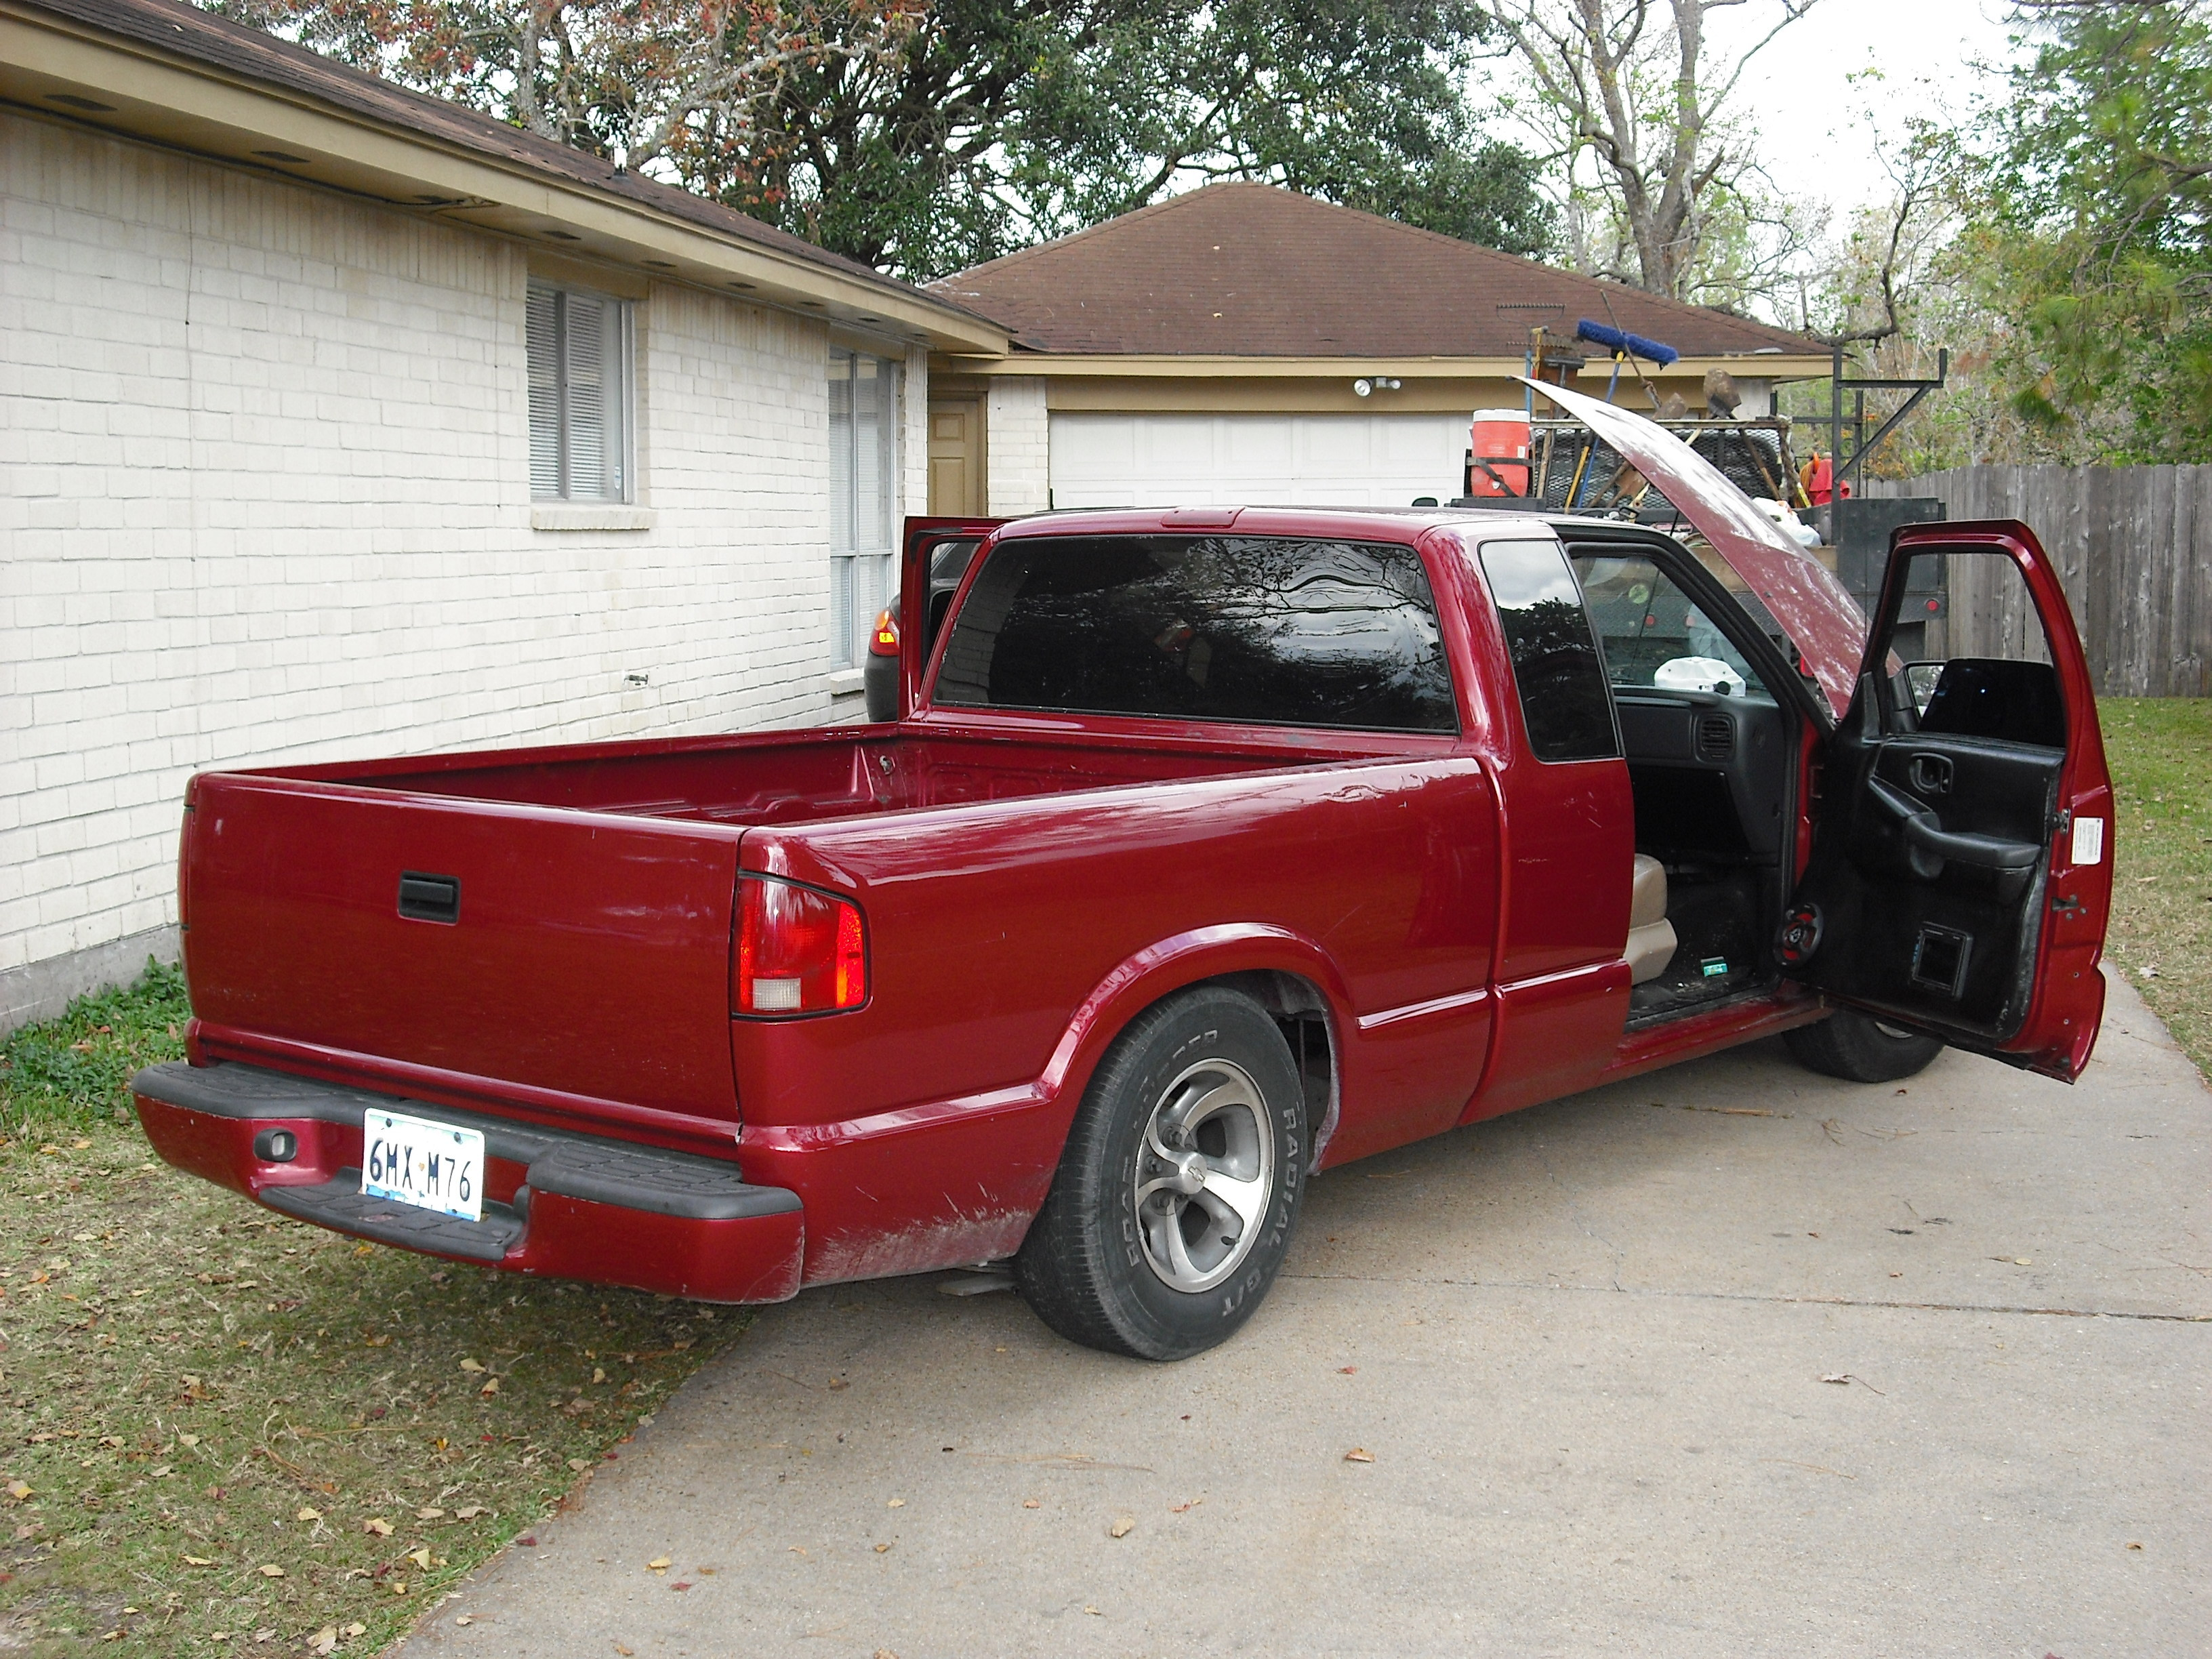 ghettofabalous2k 2000 chevrolet s10 regular cab specs photos modification info at cardomain. Black Bedroom Furniture Sets. Home Design Ideas